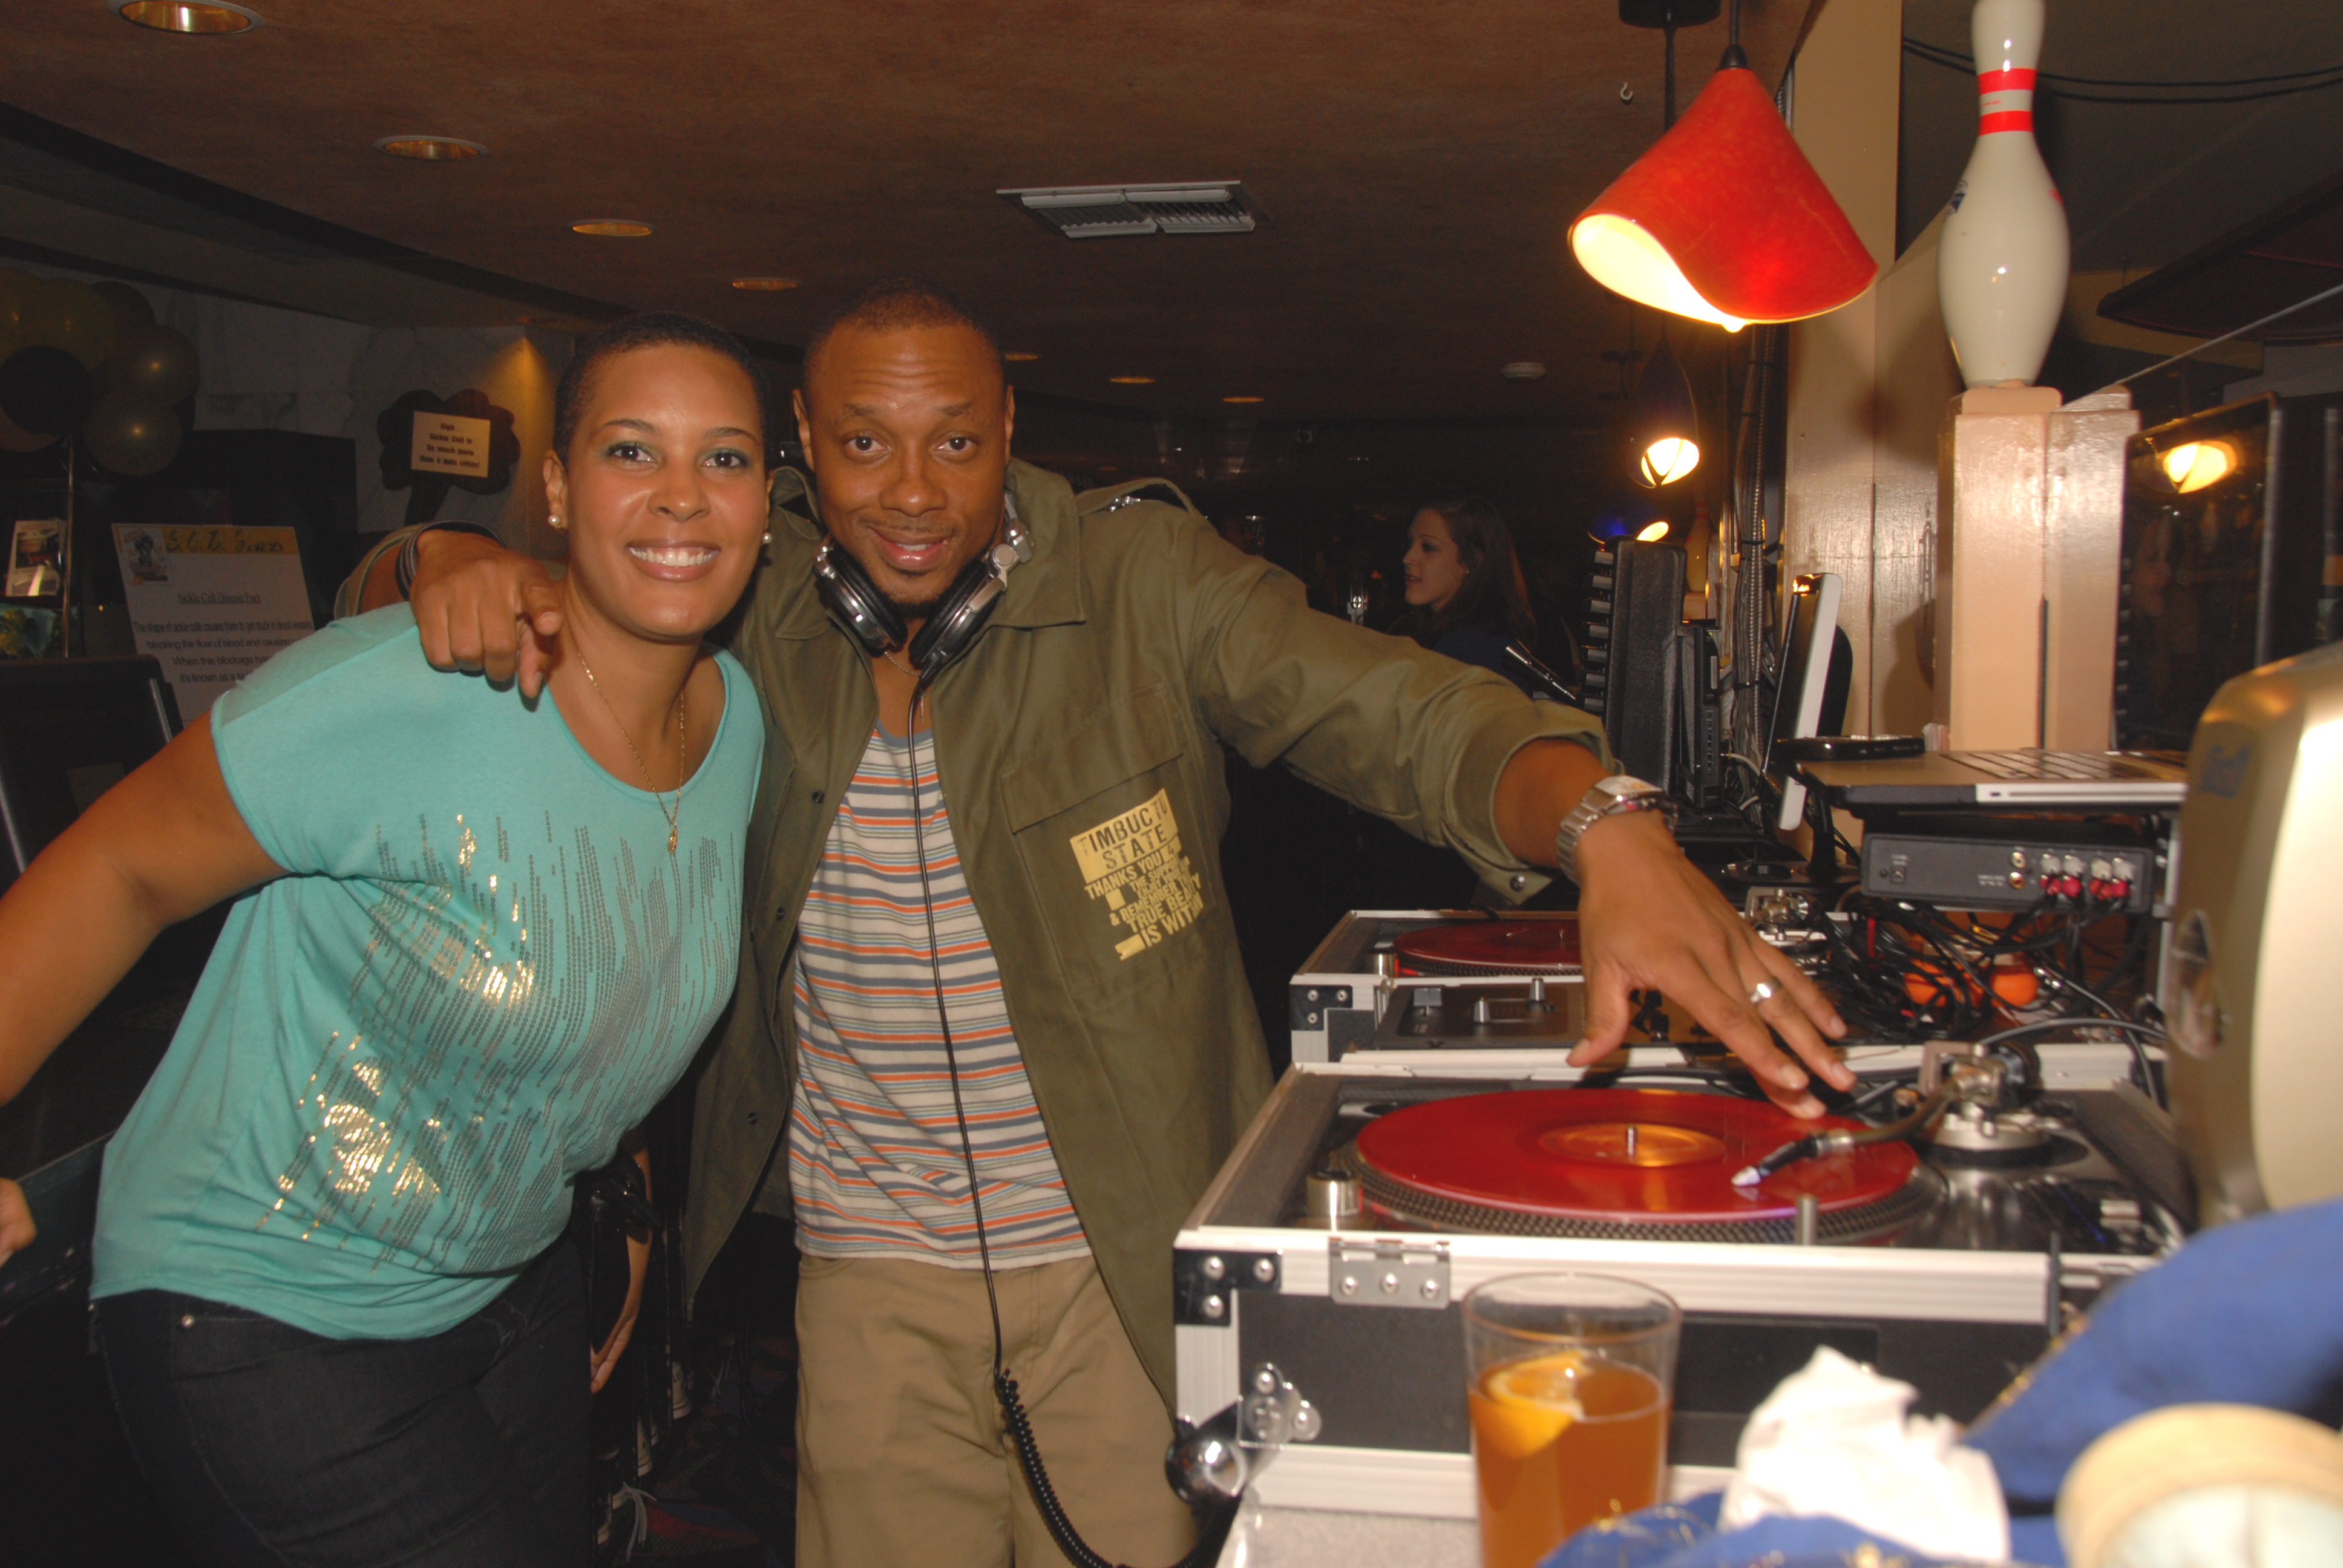 LaTonia Robinson and Dorian Missick